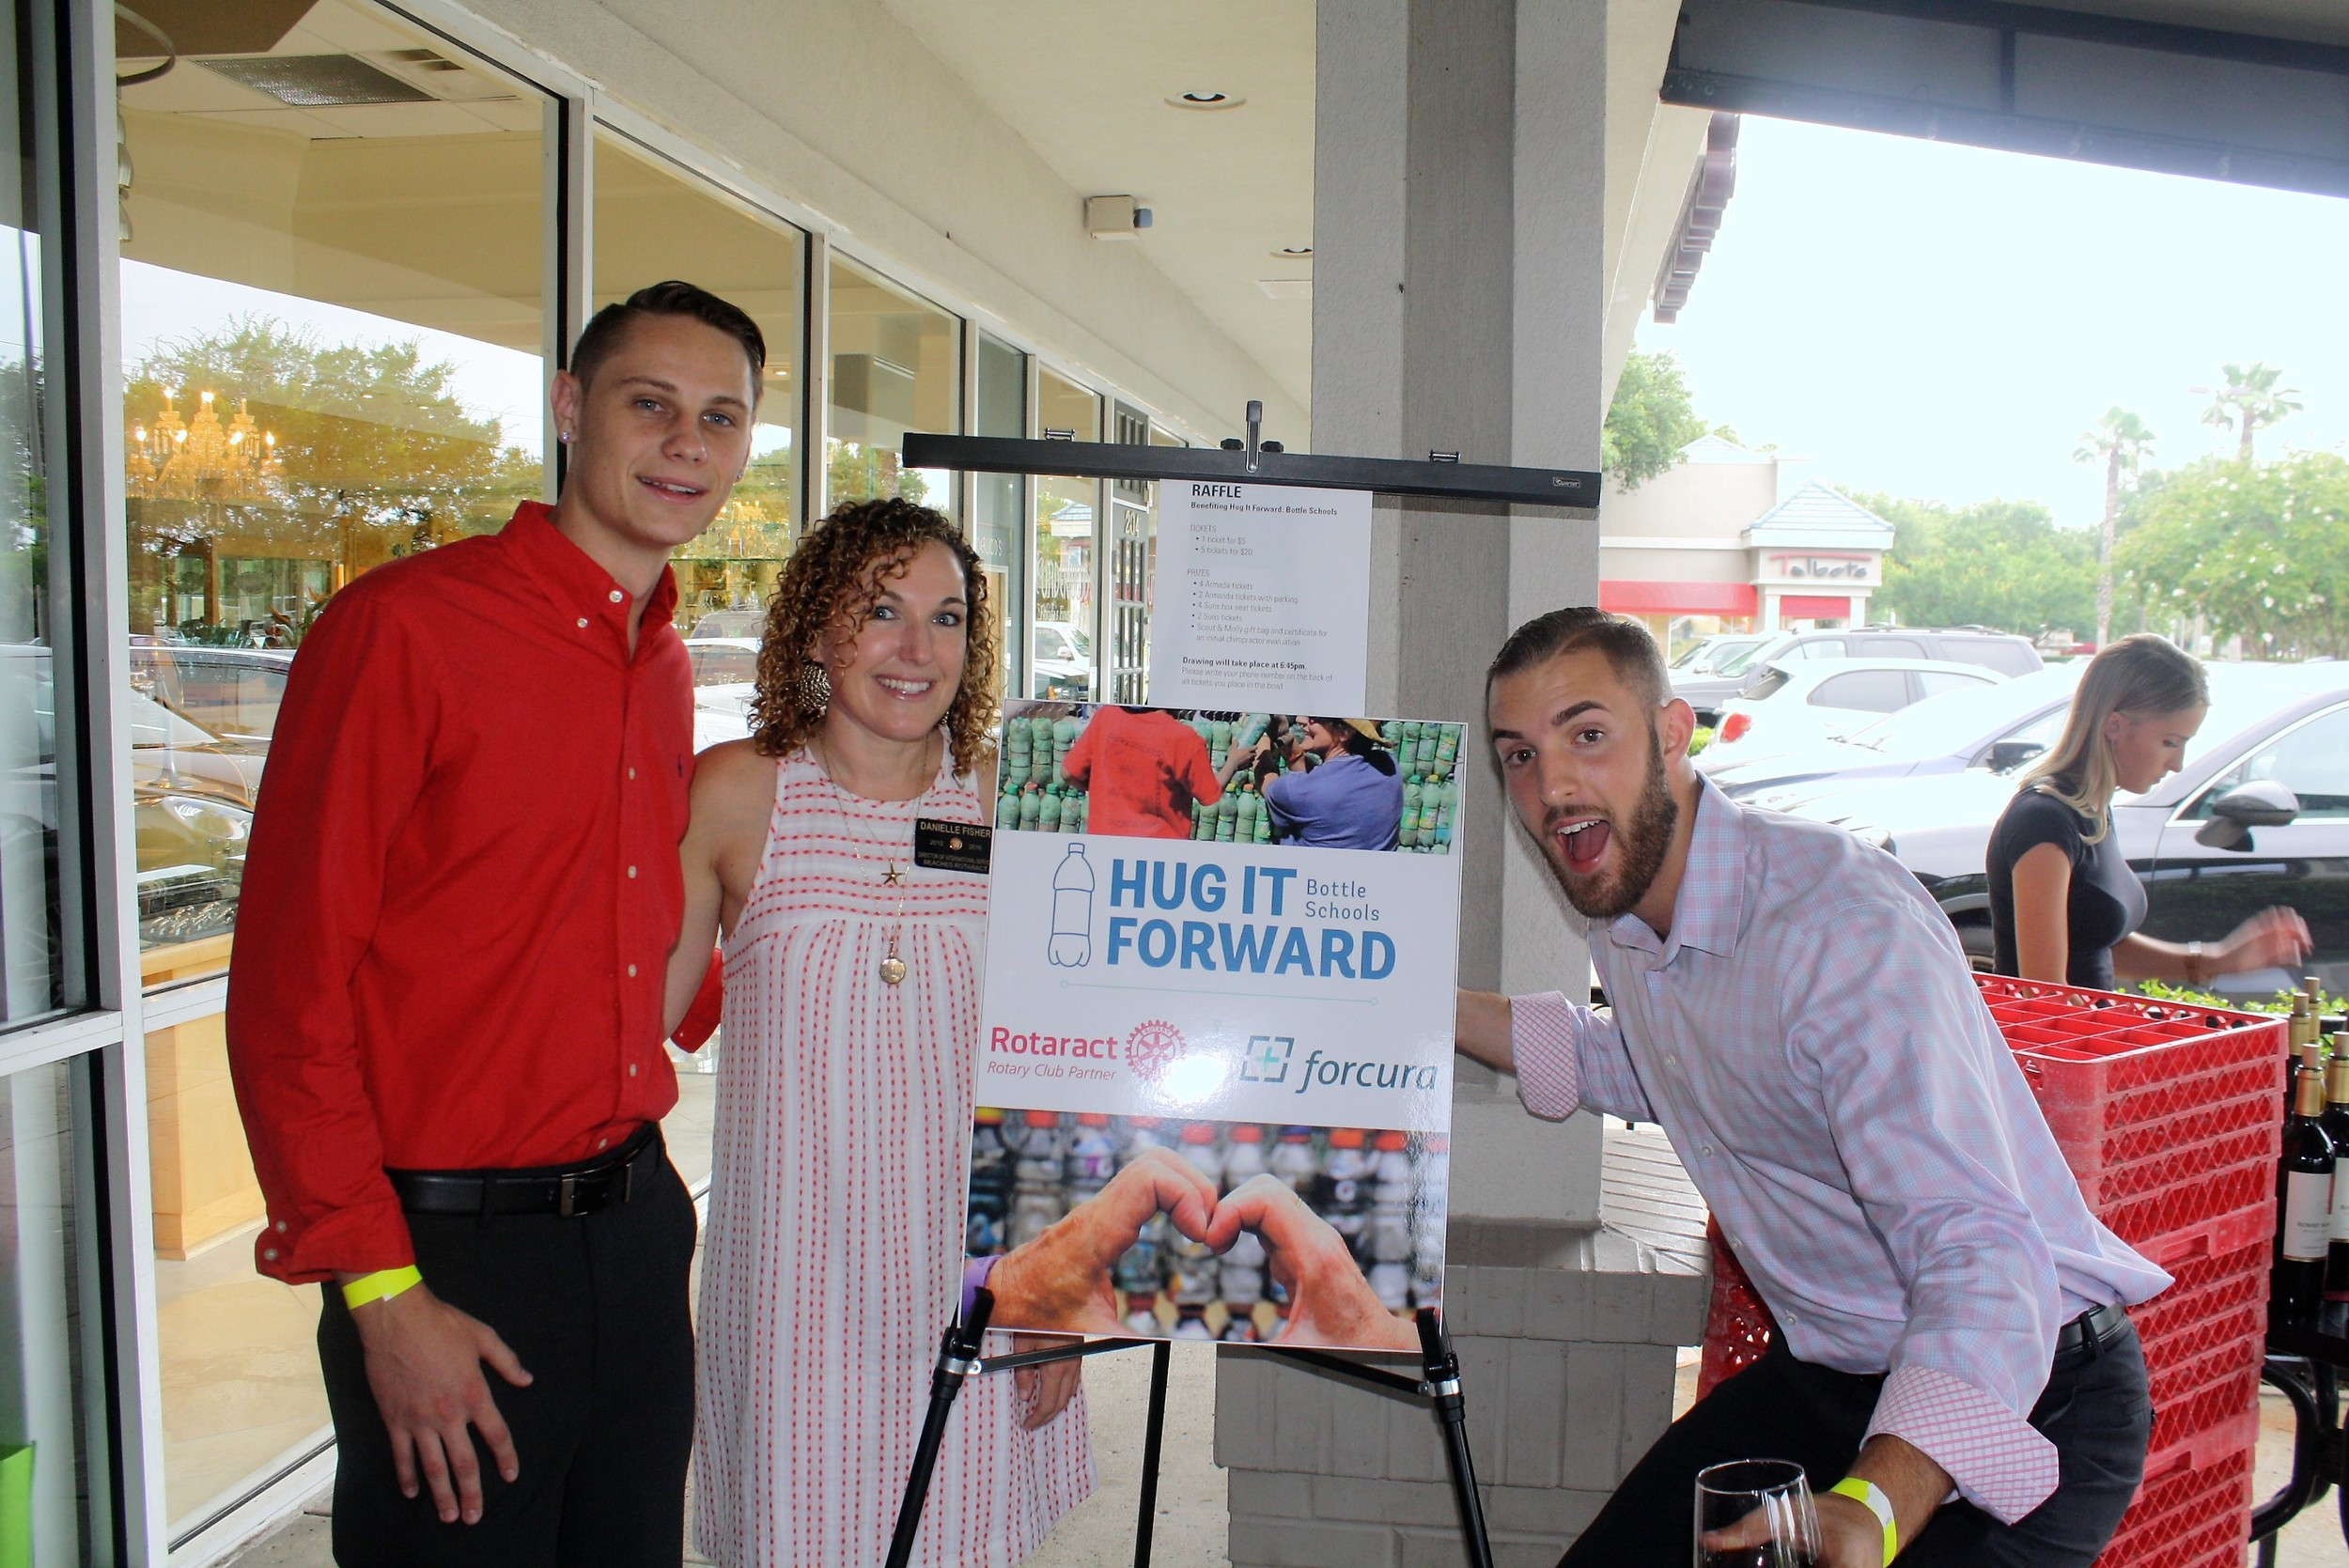 Beaches Rotaract member Danielle Fisher joins Daytona State Rotaract members Justin Gadrim (left) and Michael Tirpak at the wine tasting to raise funds to build a school in Guatemala.